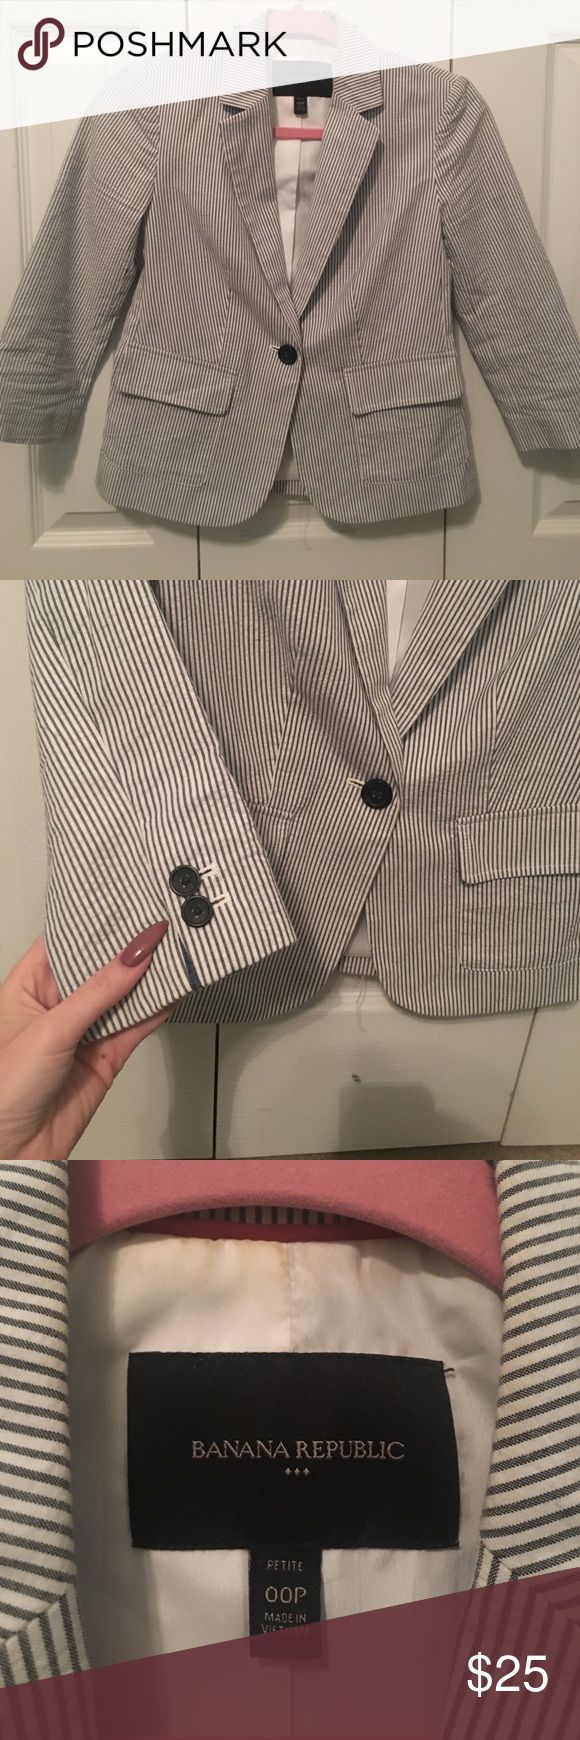 Seersucker Blazer Seersucker Blazer from Banana Republic. It is blue and white! There is some discoloration on the inner neck, as seen in picture 3. The price reflects that! Banana Republic Jackets & Coats Blazers